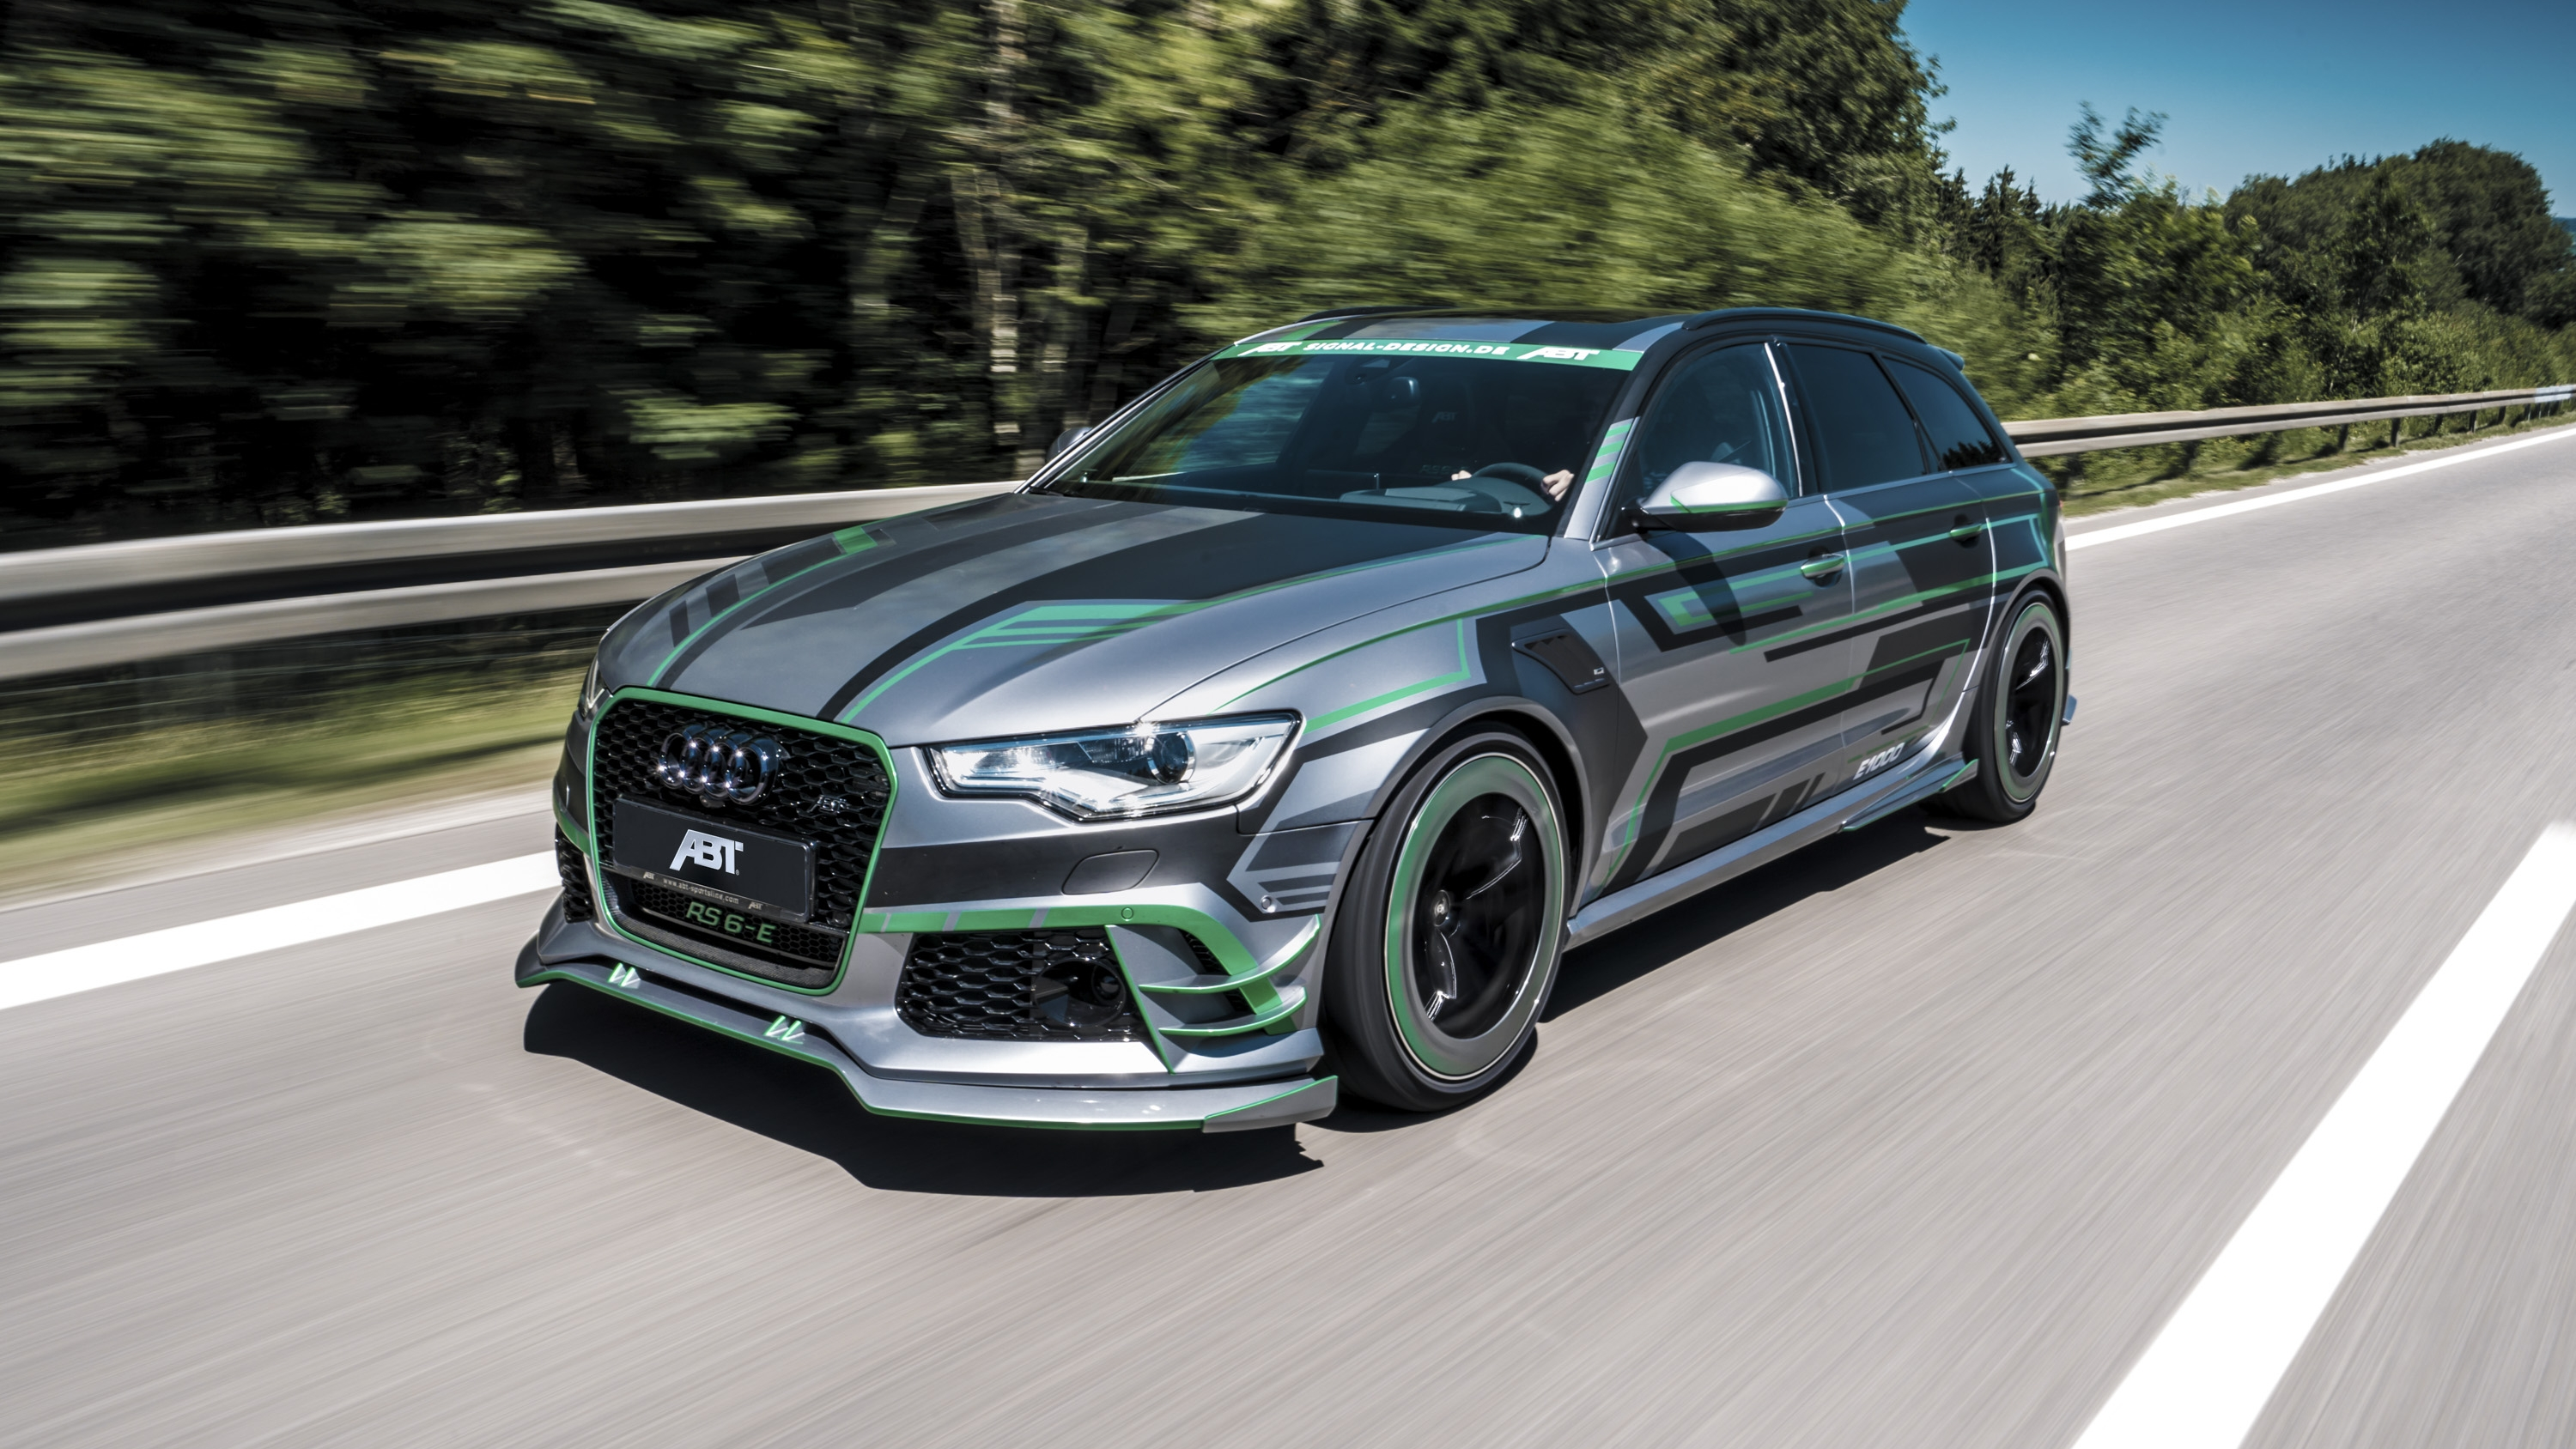 2018 audi rs6 e hybrid concept by abt top speed. Black Bedroom Furniture Sets. Home Design Ideas